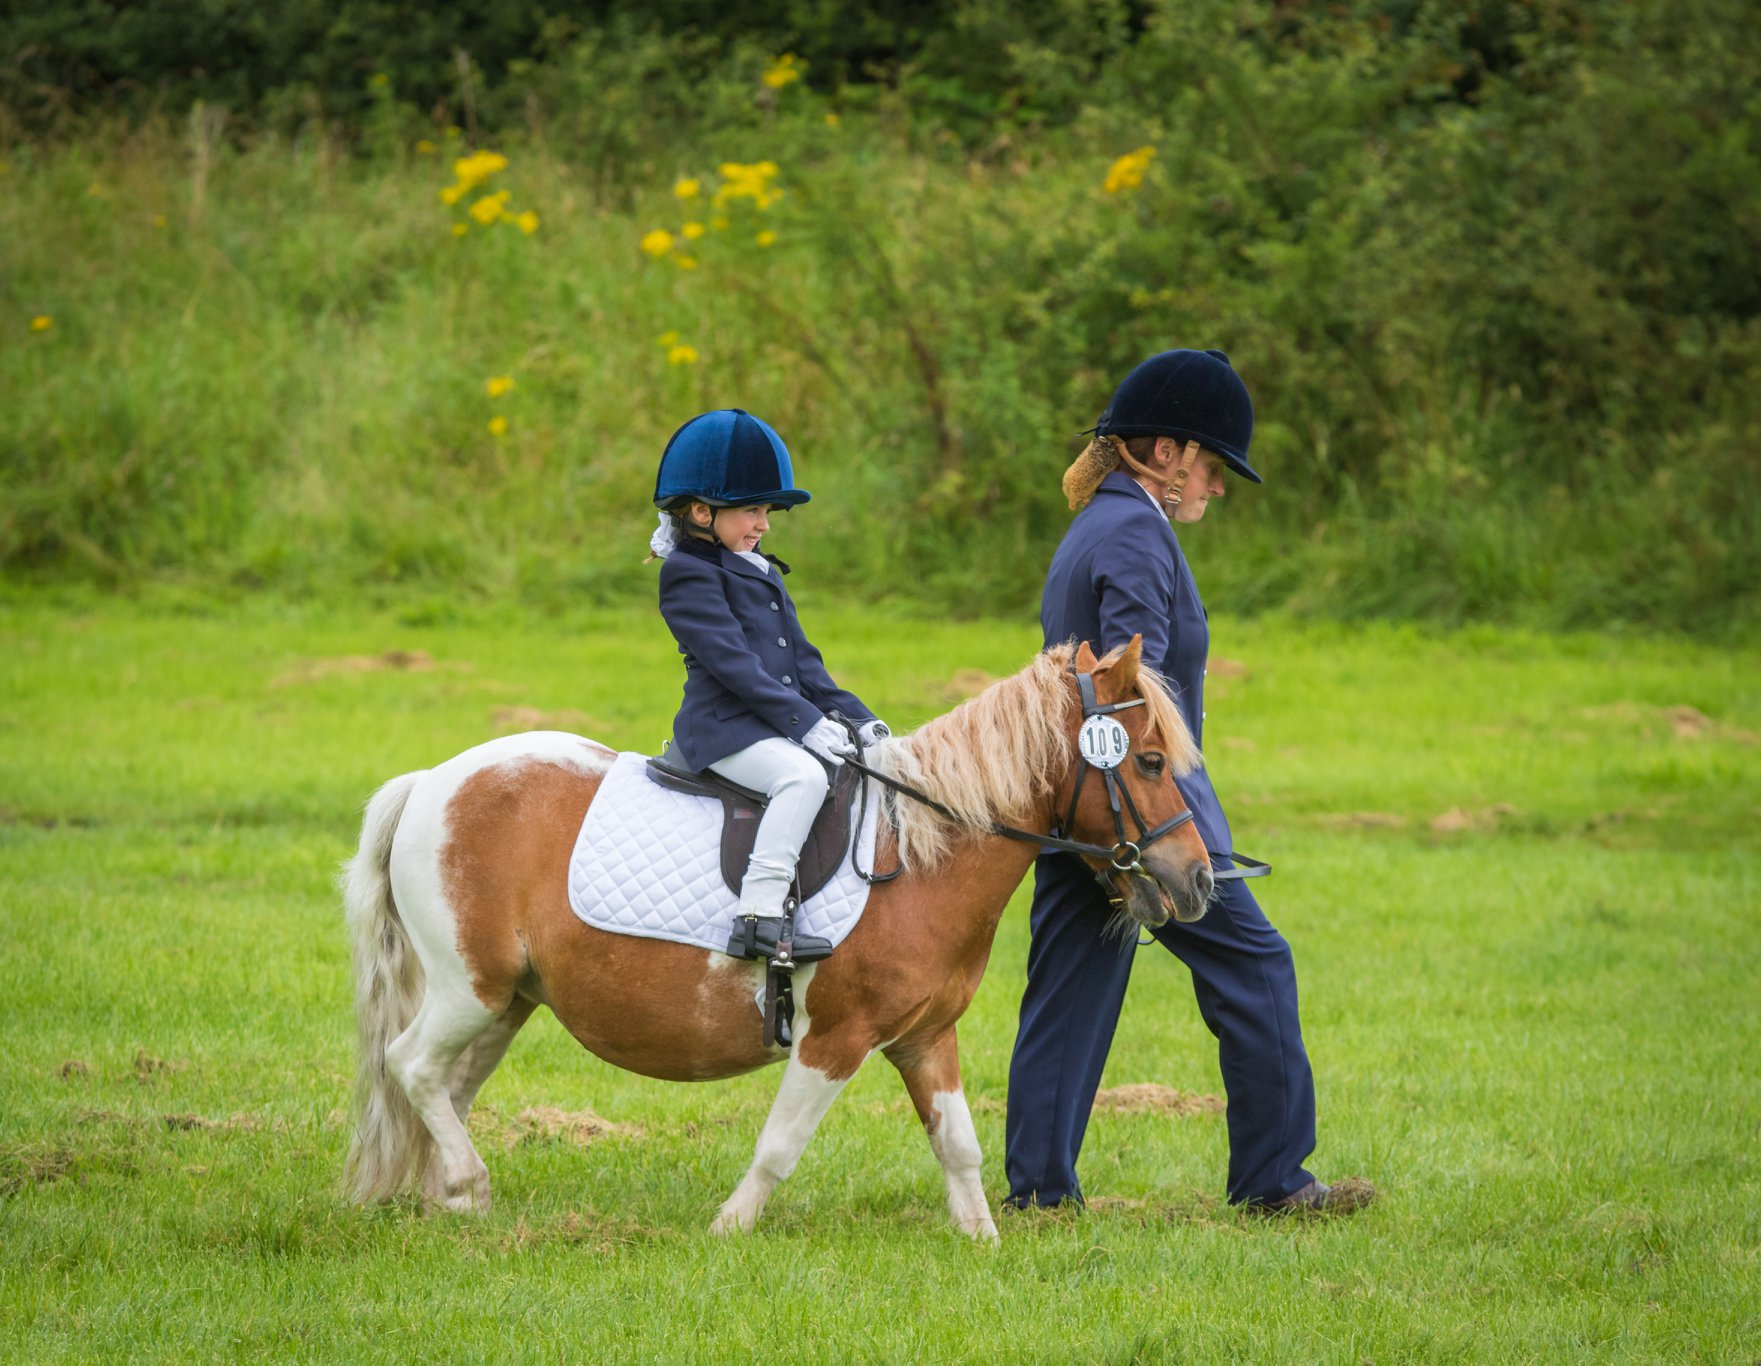 25th July – Dressage Results